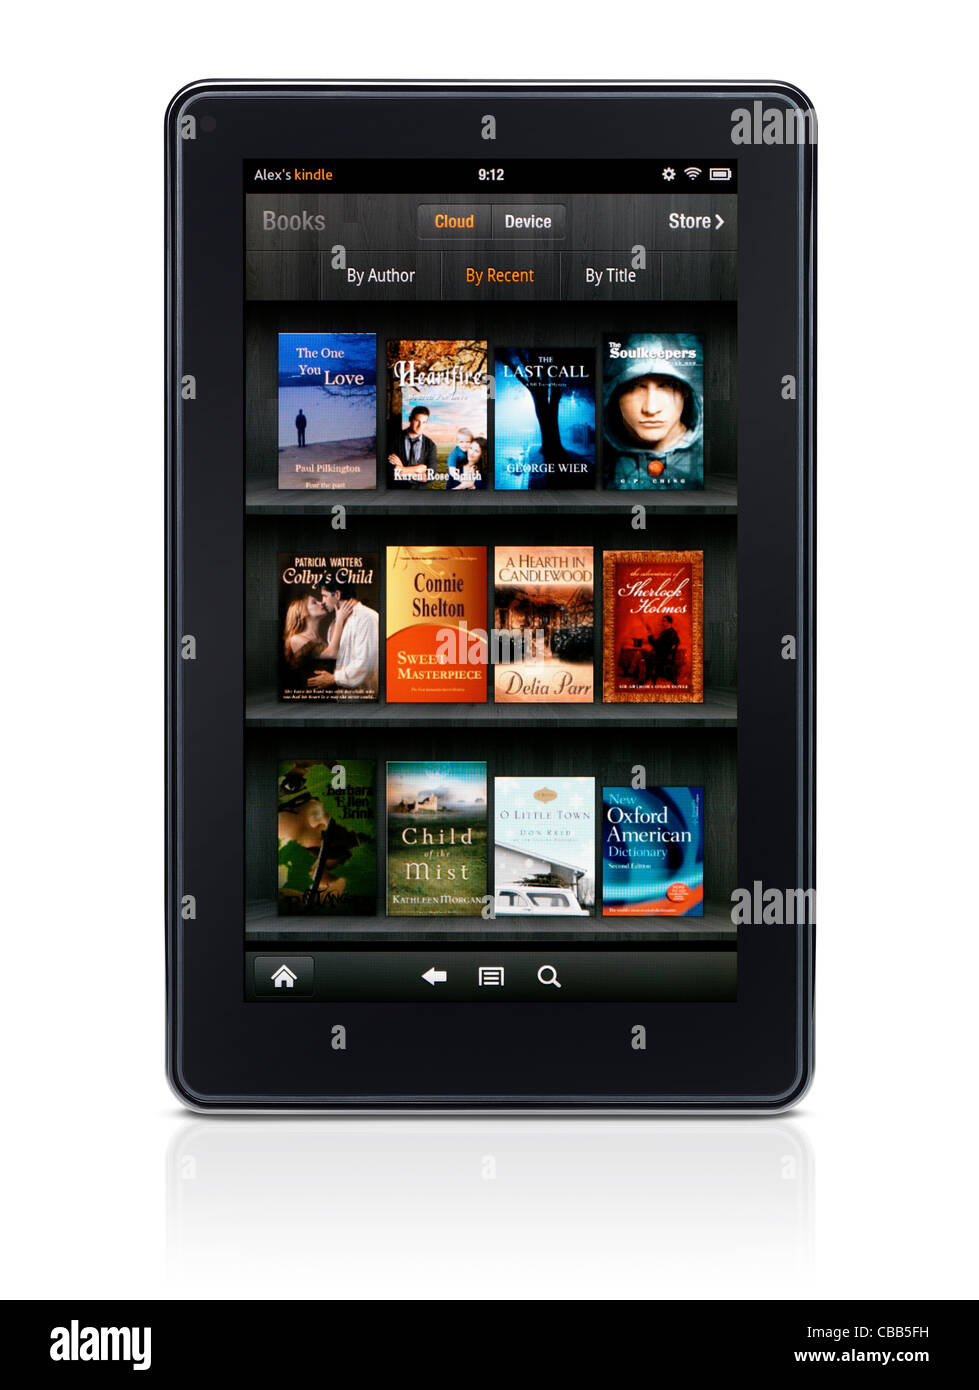 Amazon Kindle Fire tablet computer e-book reader displaying